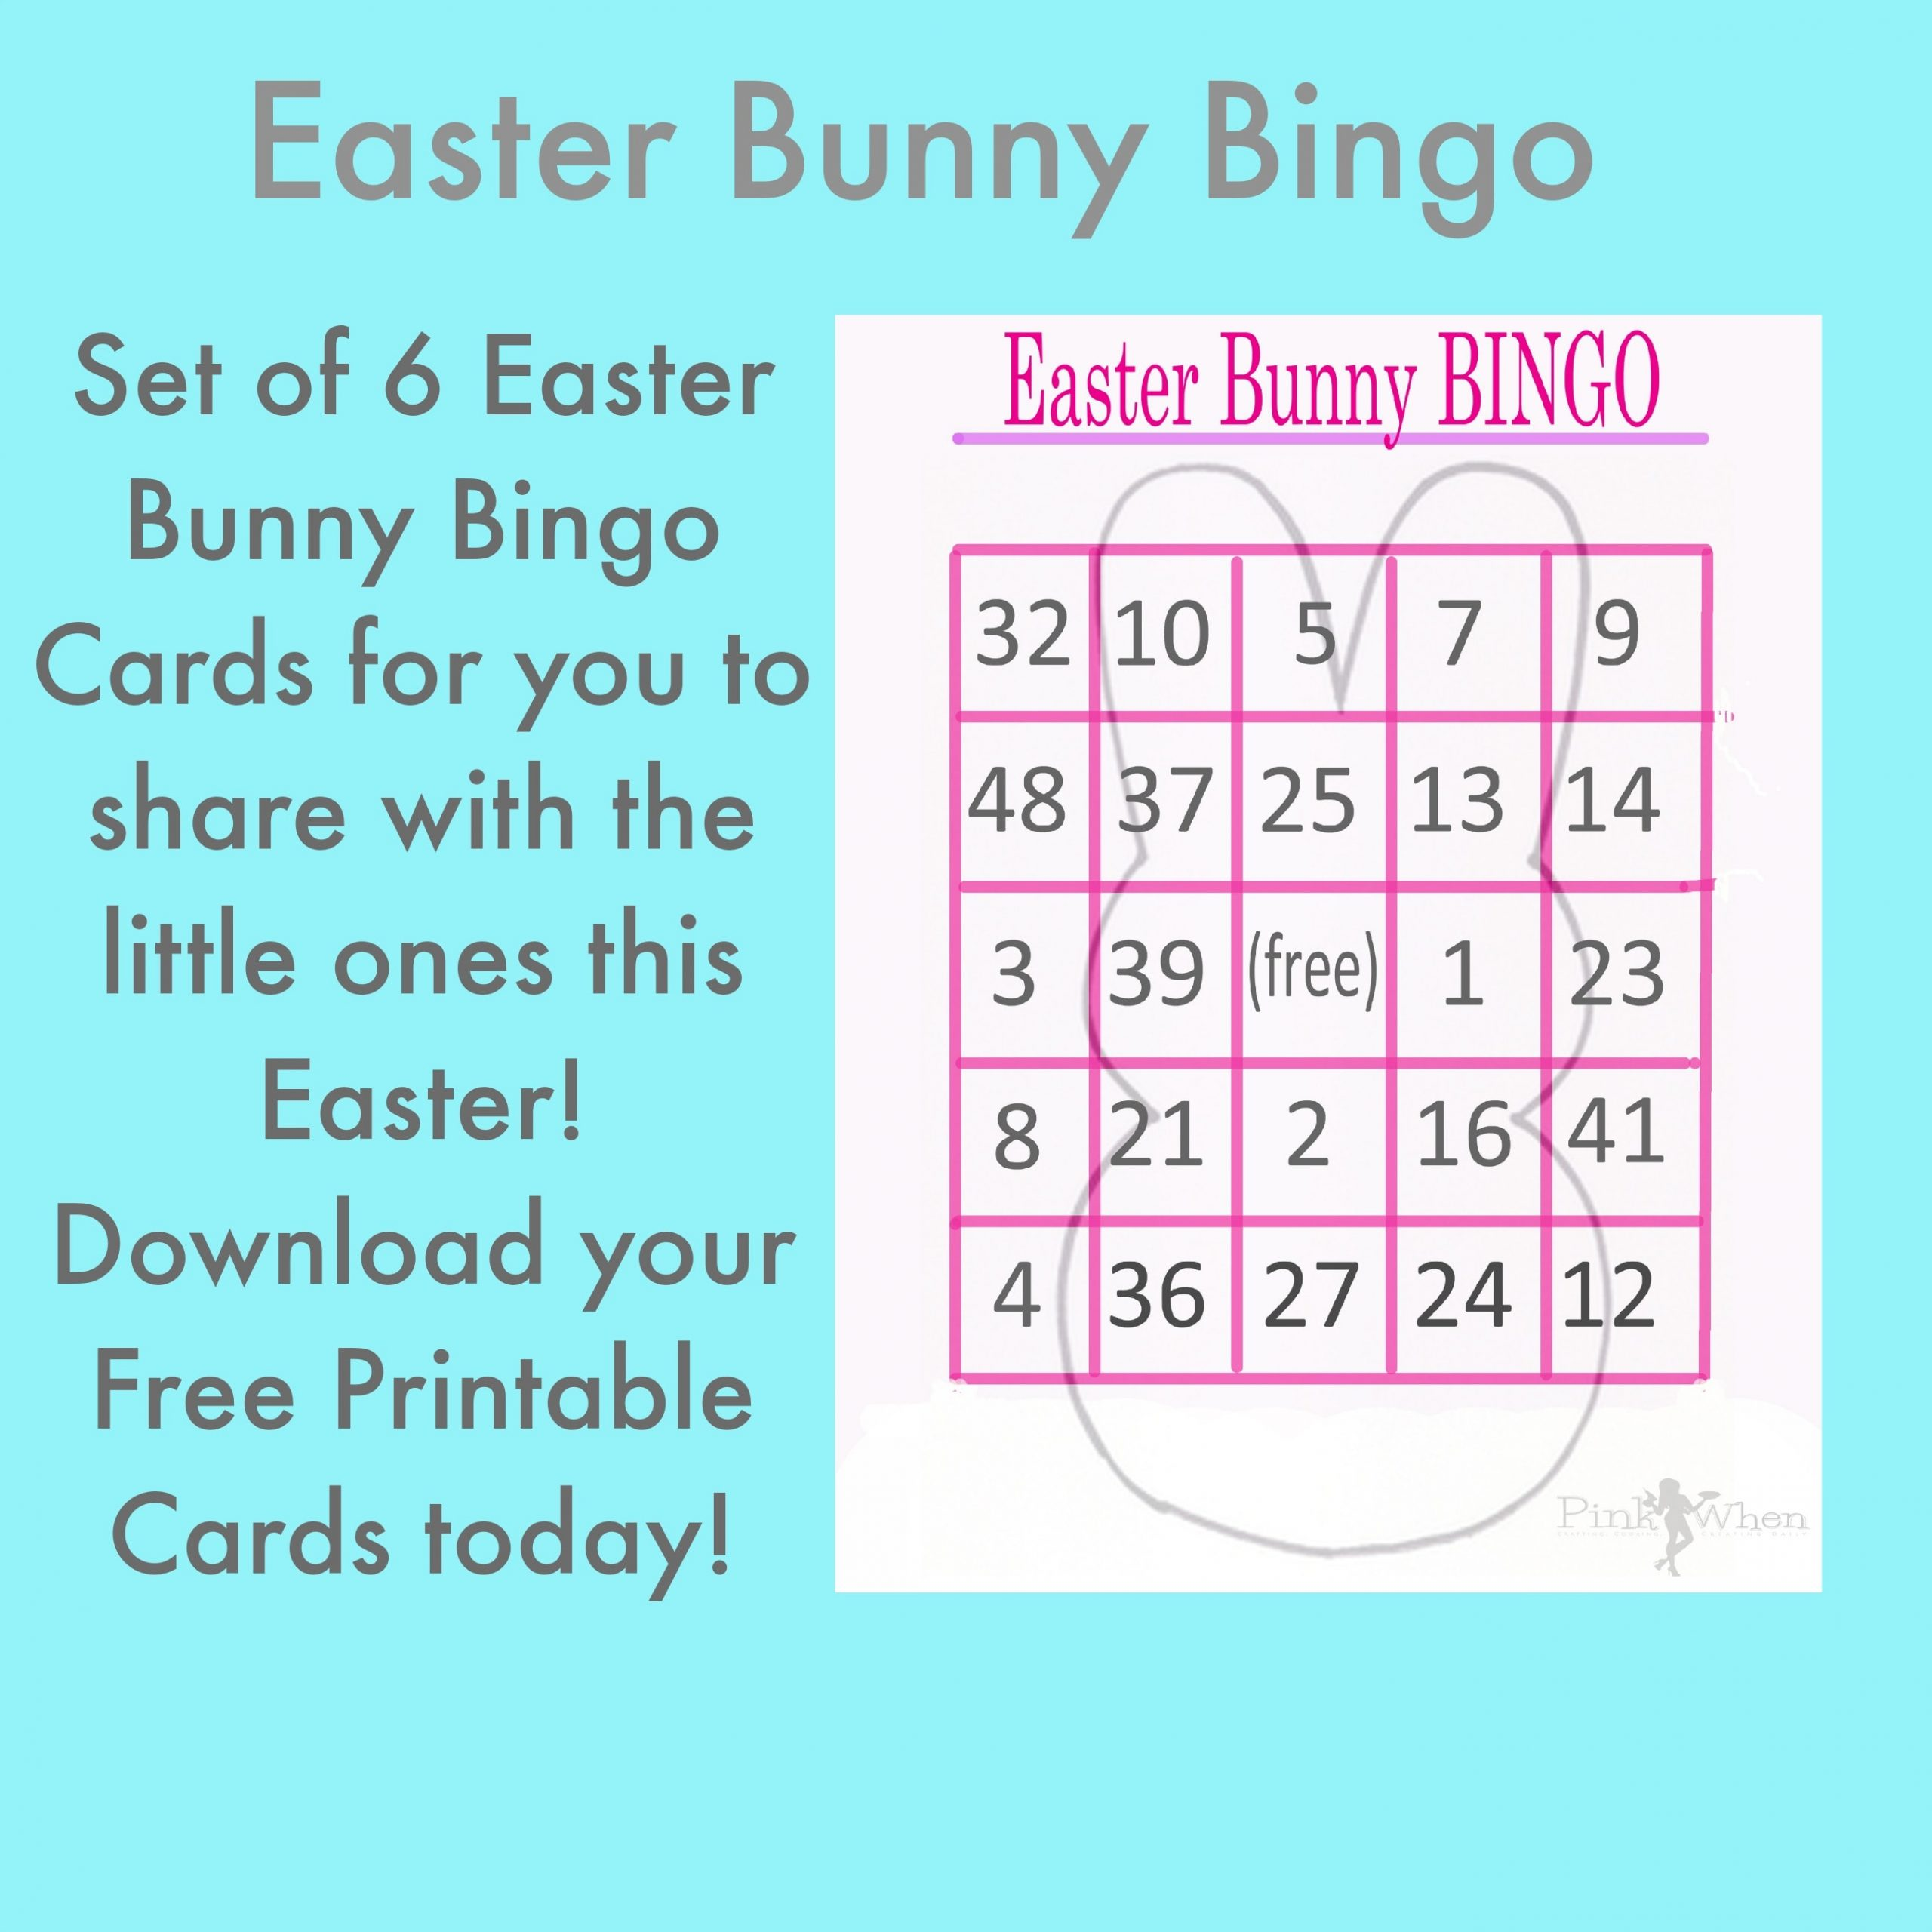 image relating to Free Printable Easter Bingo Cards named Easter Bunny Bingo Playing cards Absolutely free Printables - Site 2 of 2